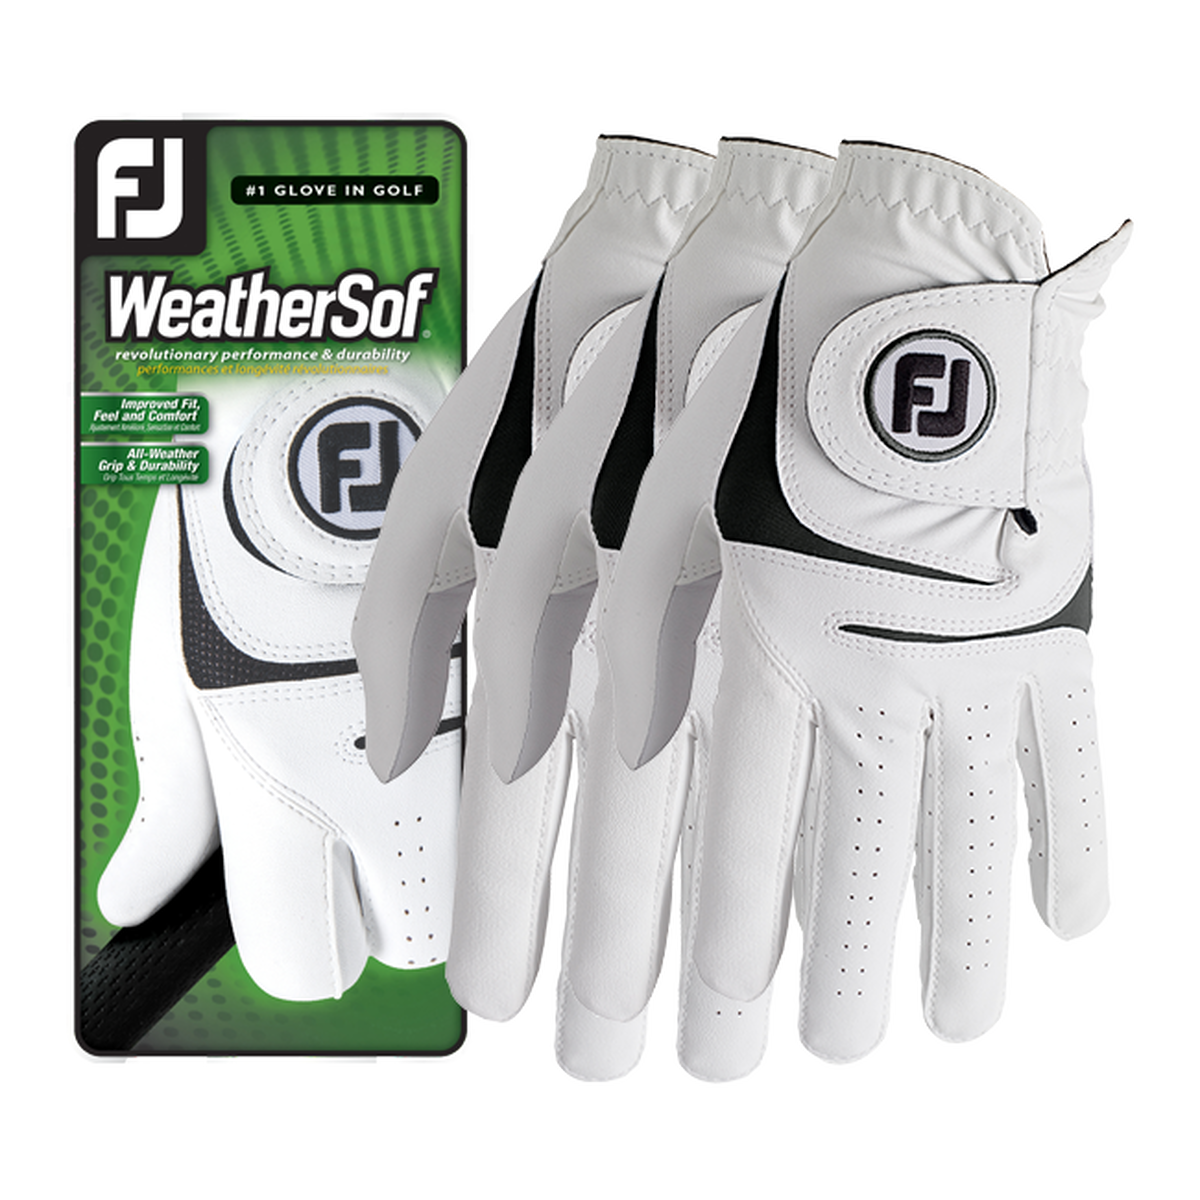 WeatherSof 3-Pack